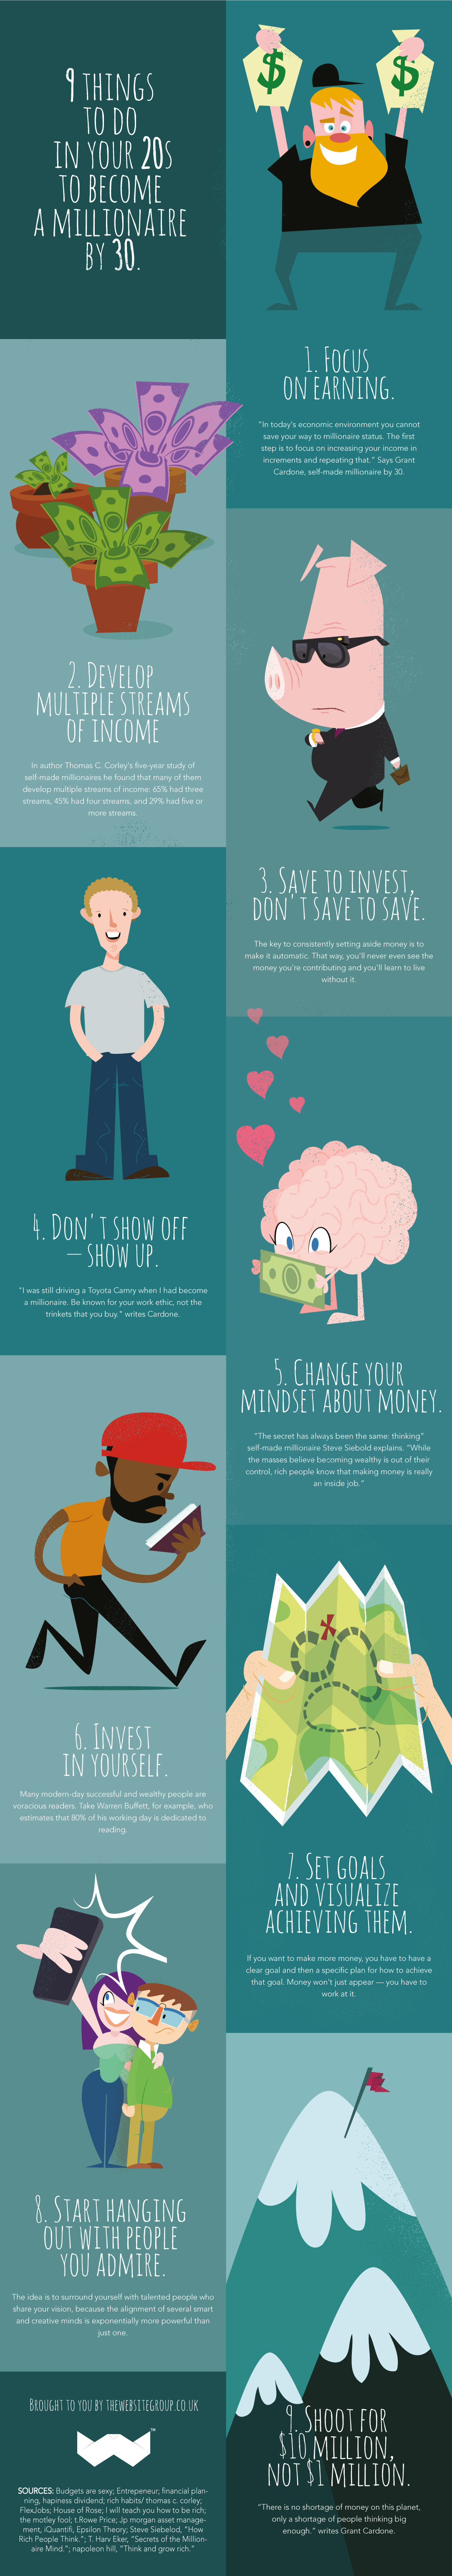 Become a Millionaire by 30